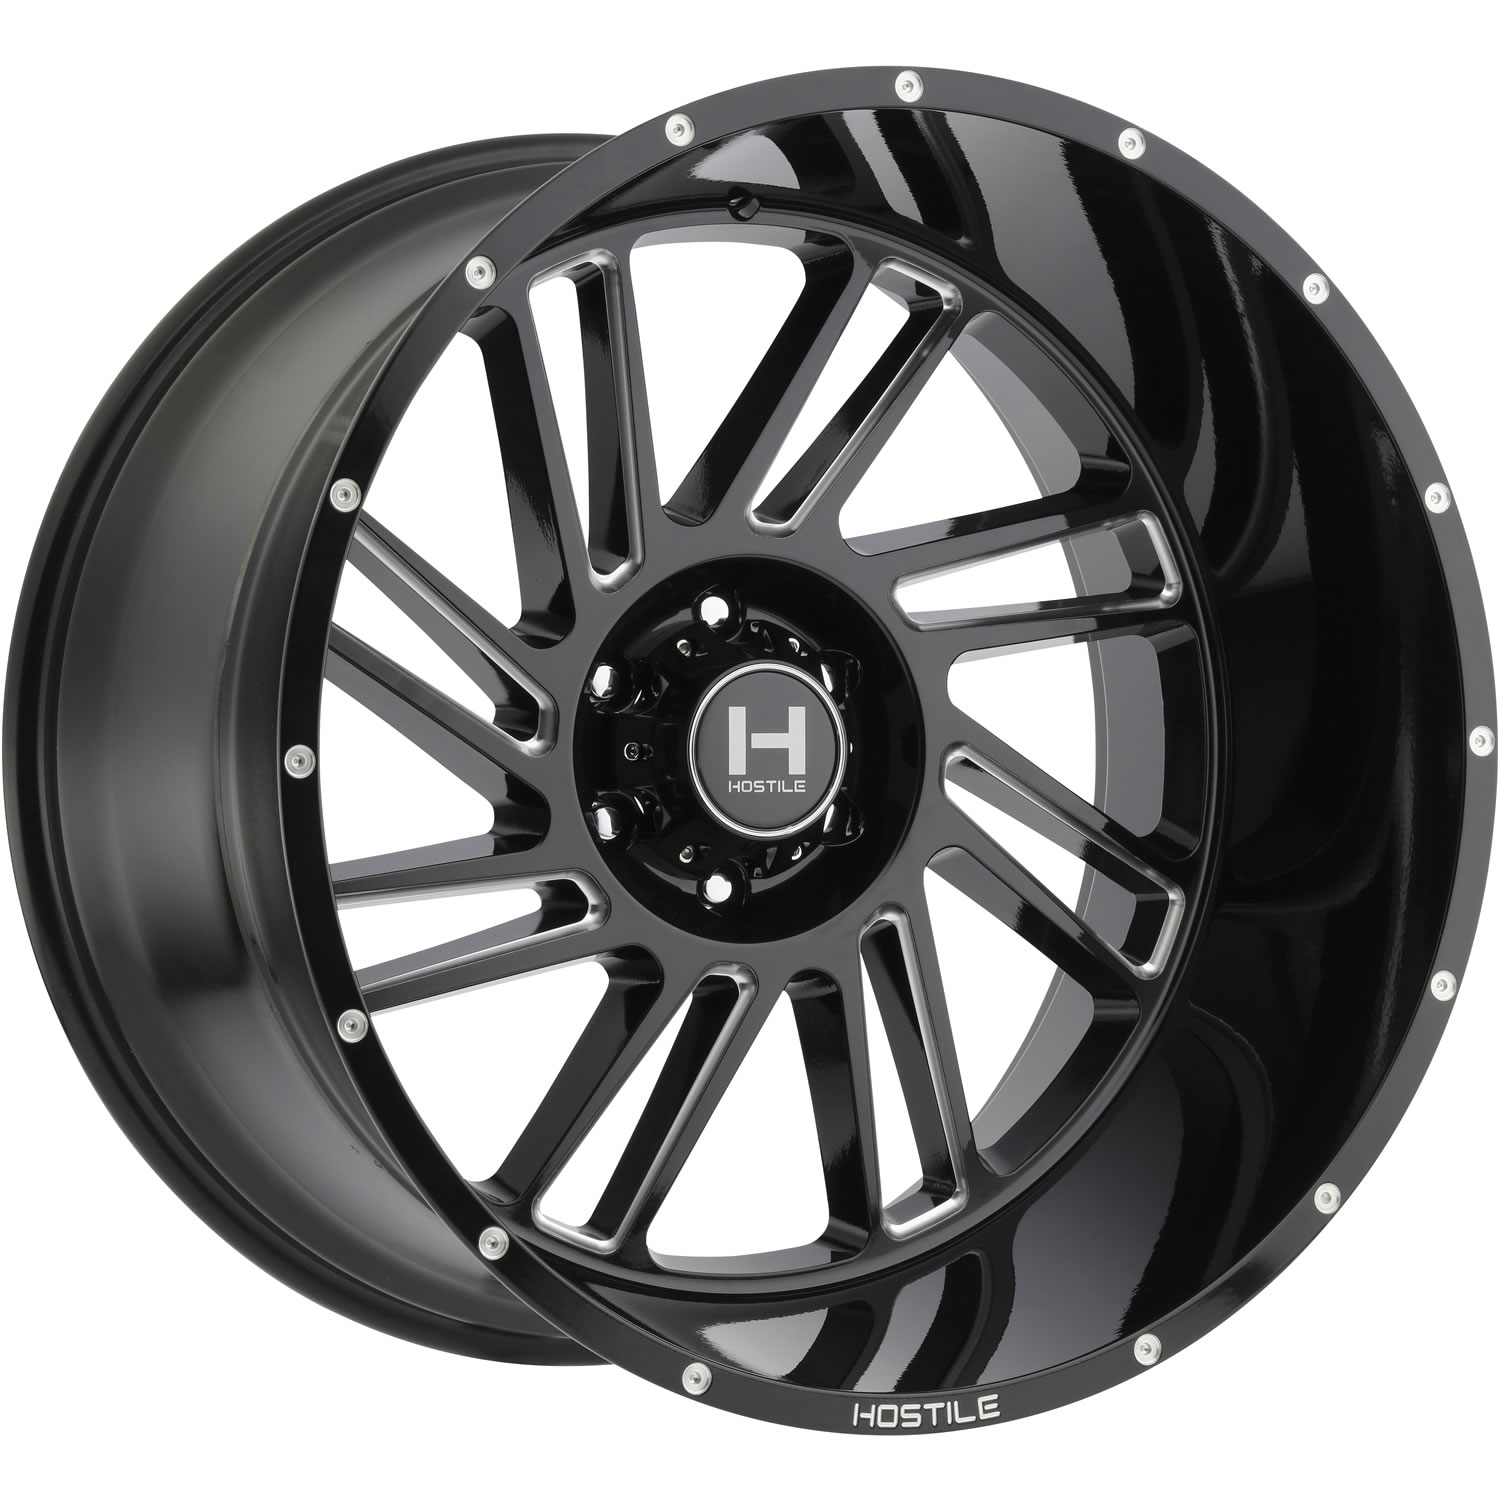 Hostile Stryker 20x10 19 Custom Wheels